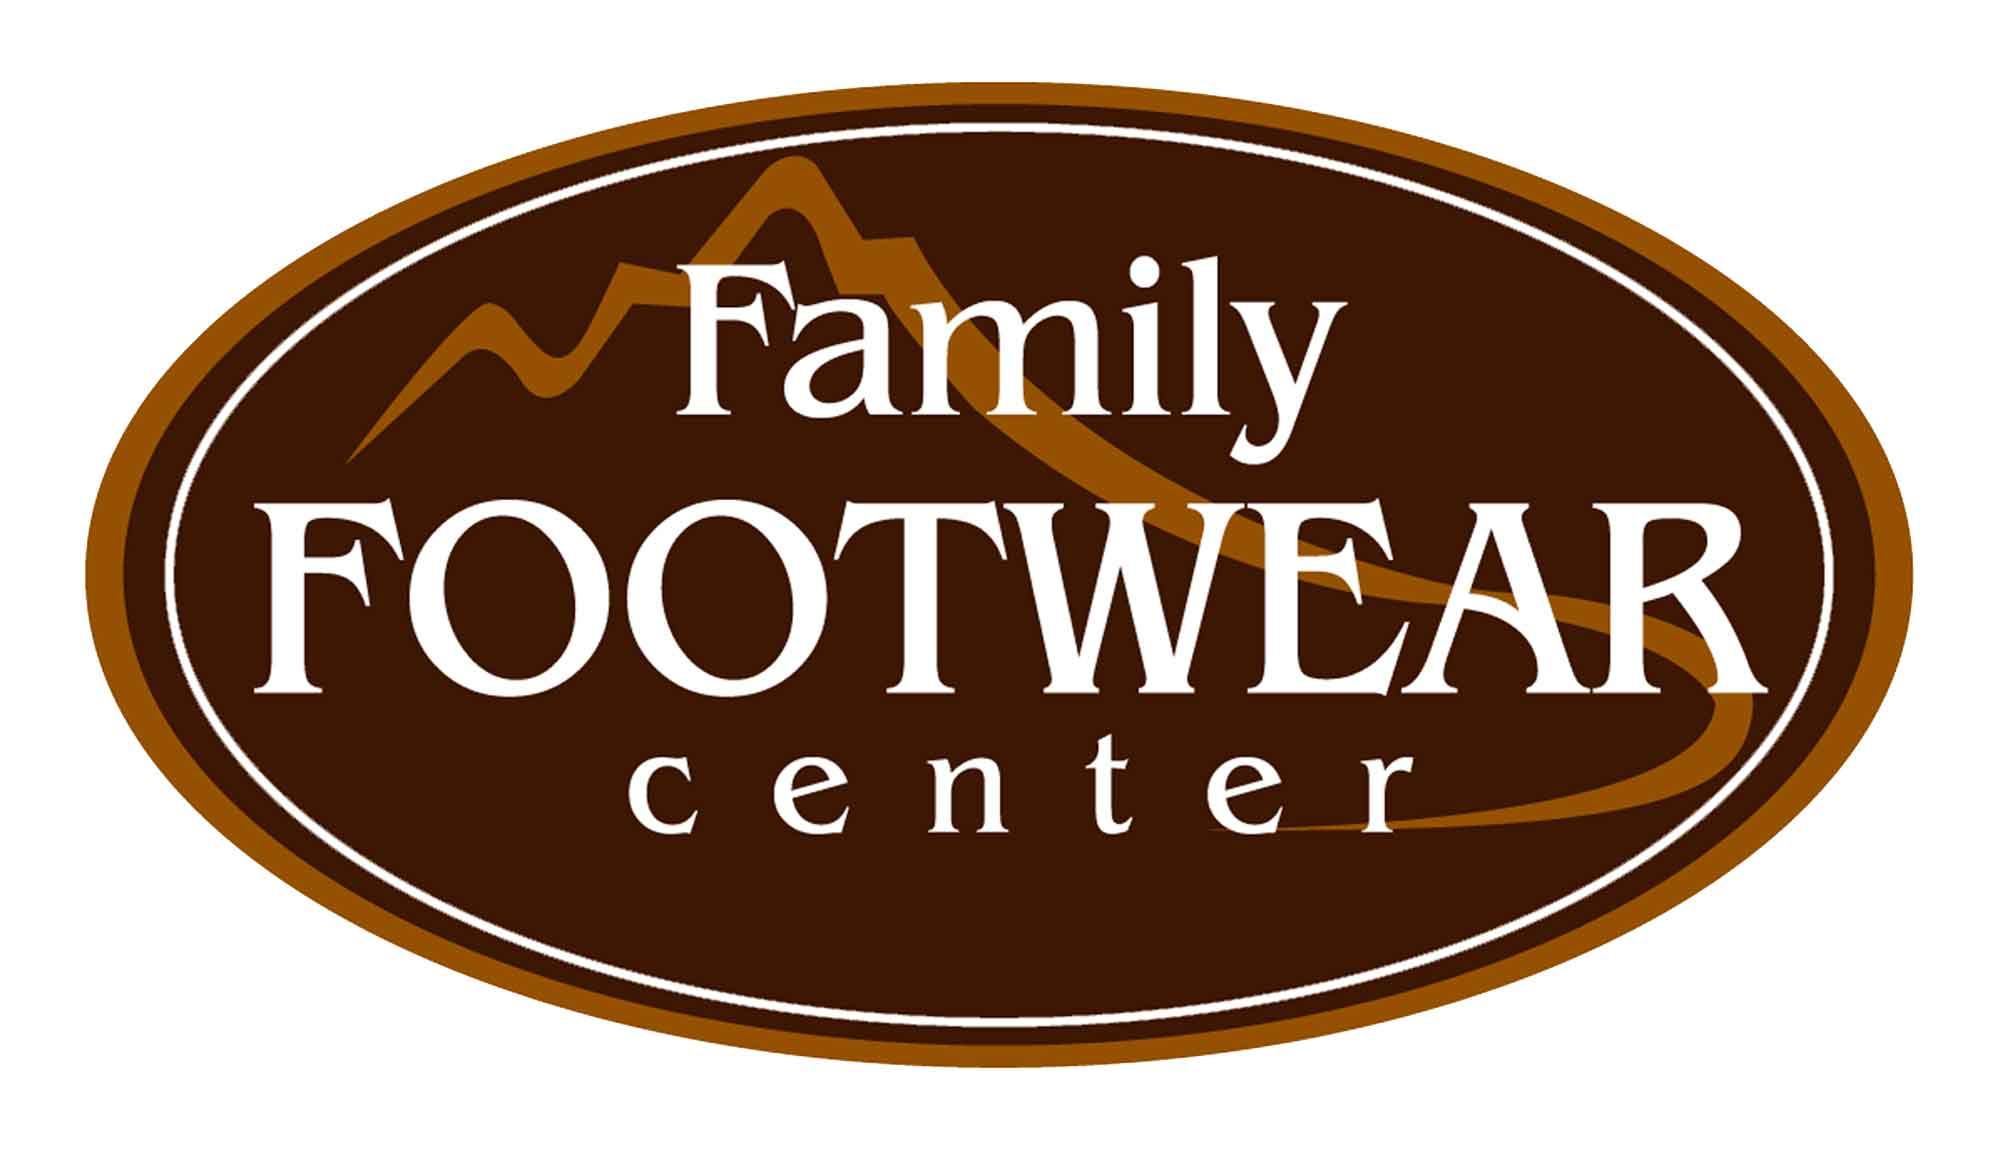 Family Footwear Center is Your Work Boot Headquarters